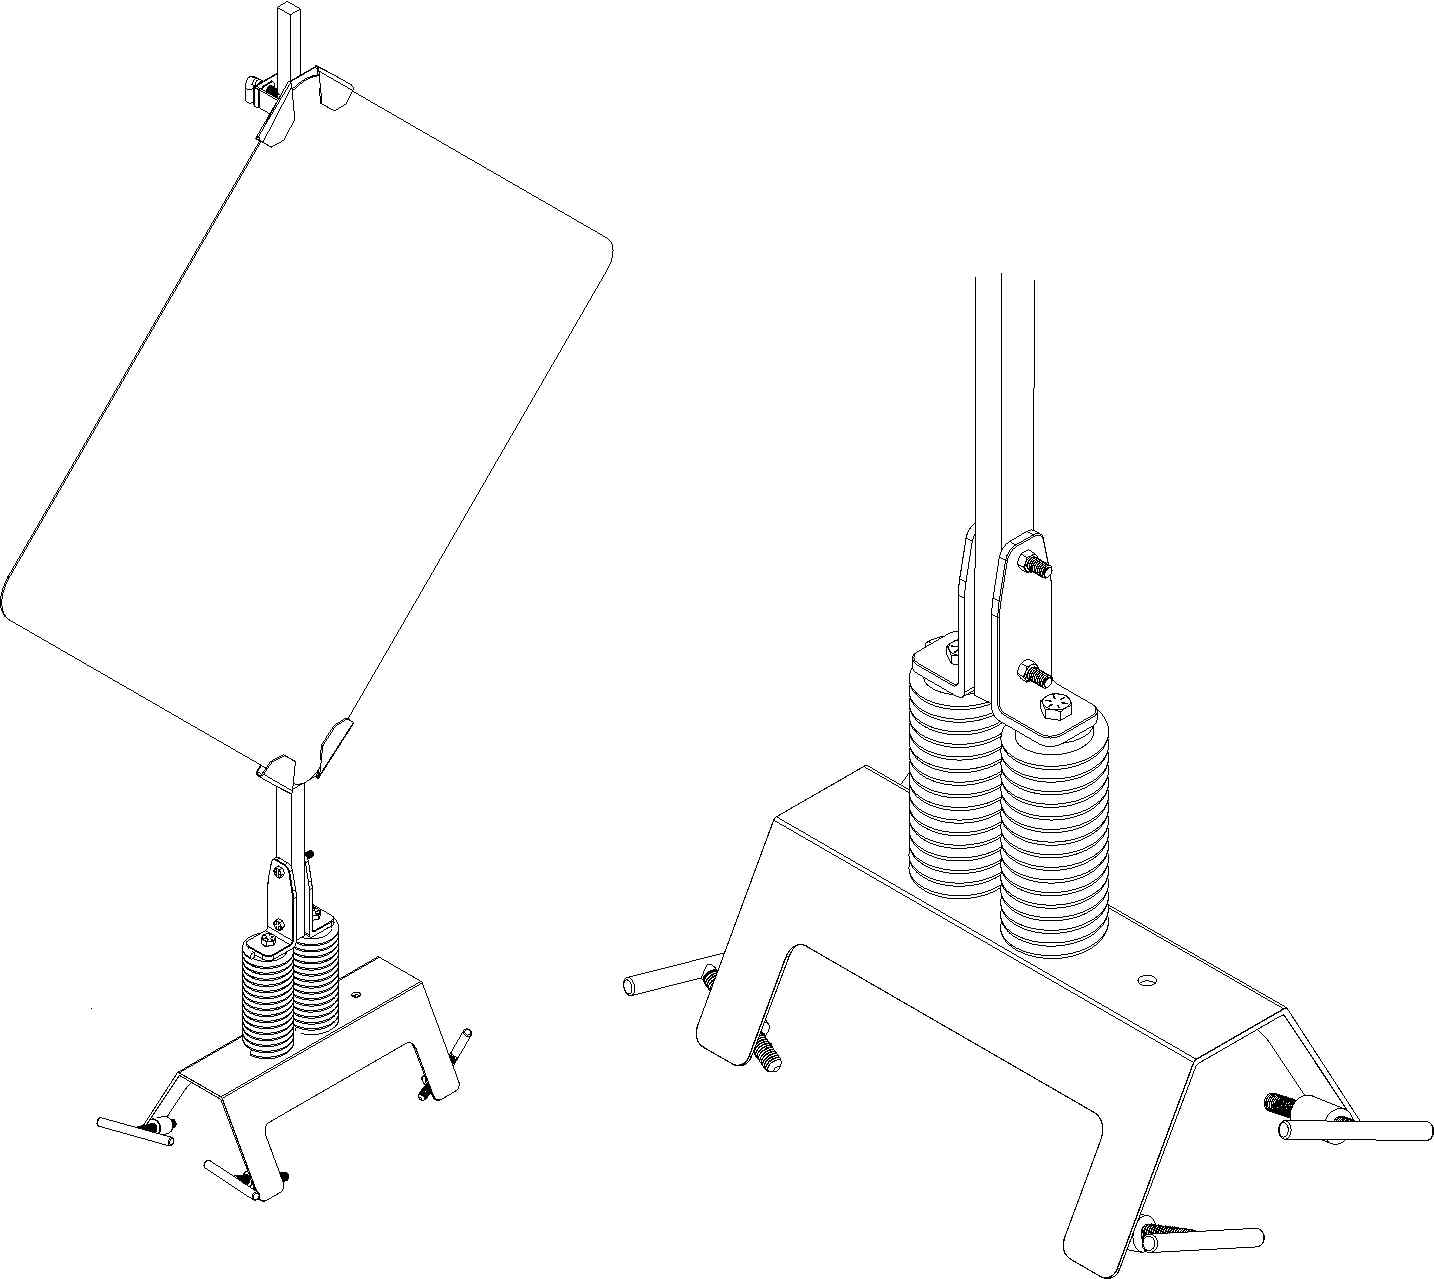 barricade_drawings clamp drawing for traffic sign stands with springs